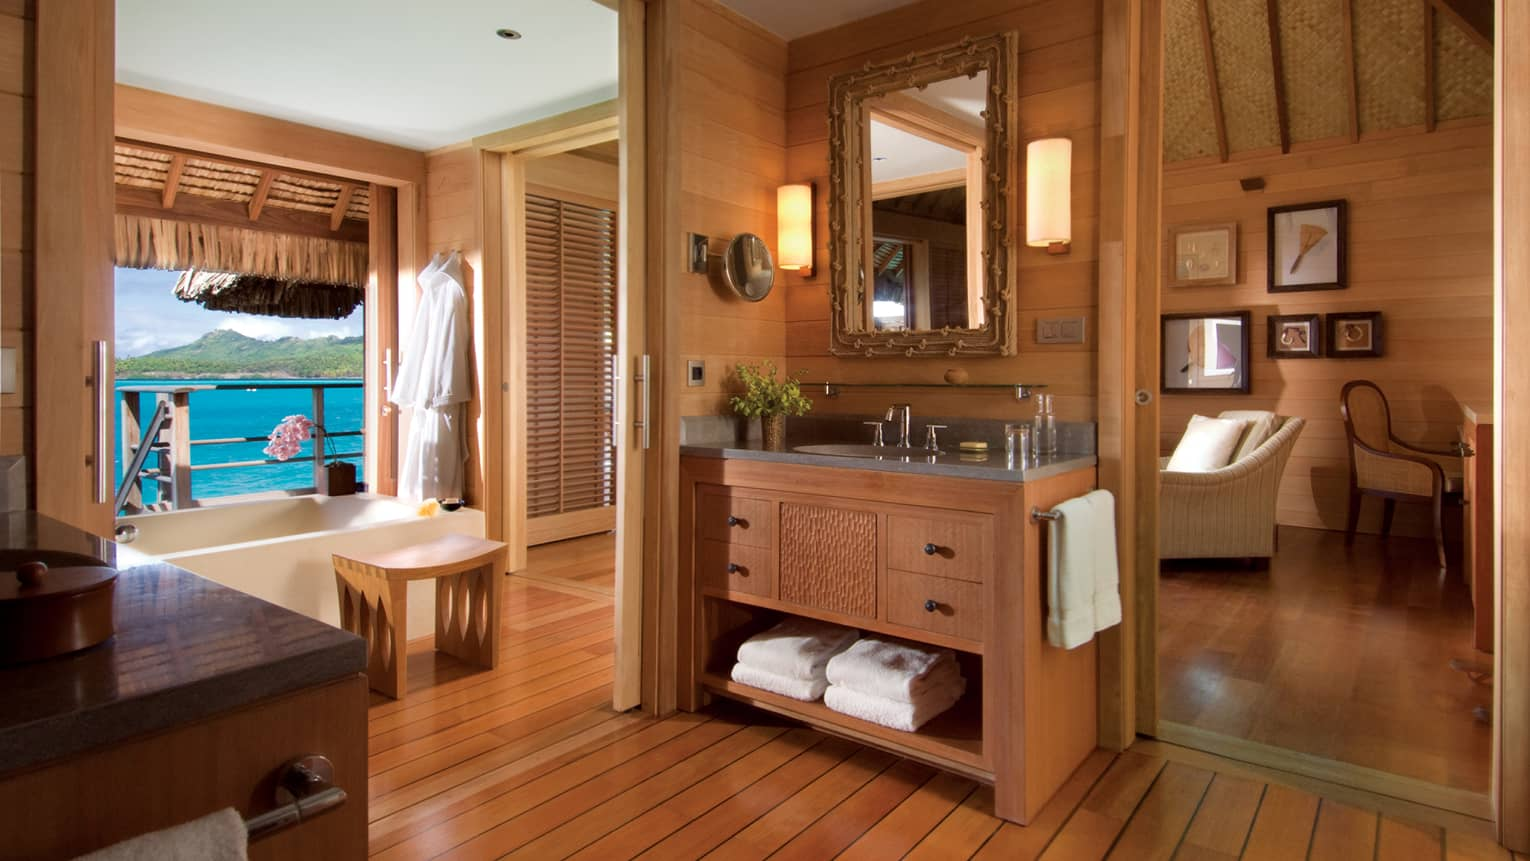 Large bathroom with wood decor, sink and vanity, full-length mirror and bathtub looking out at ocean